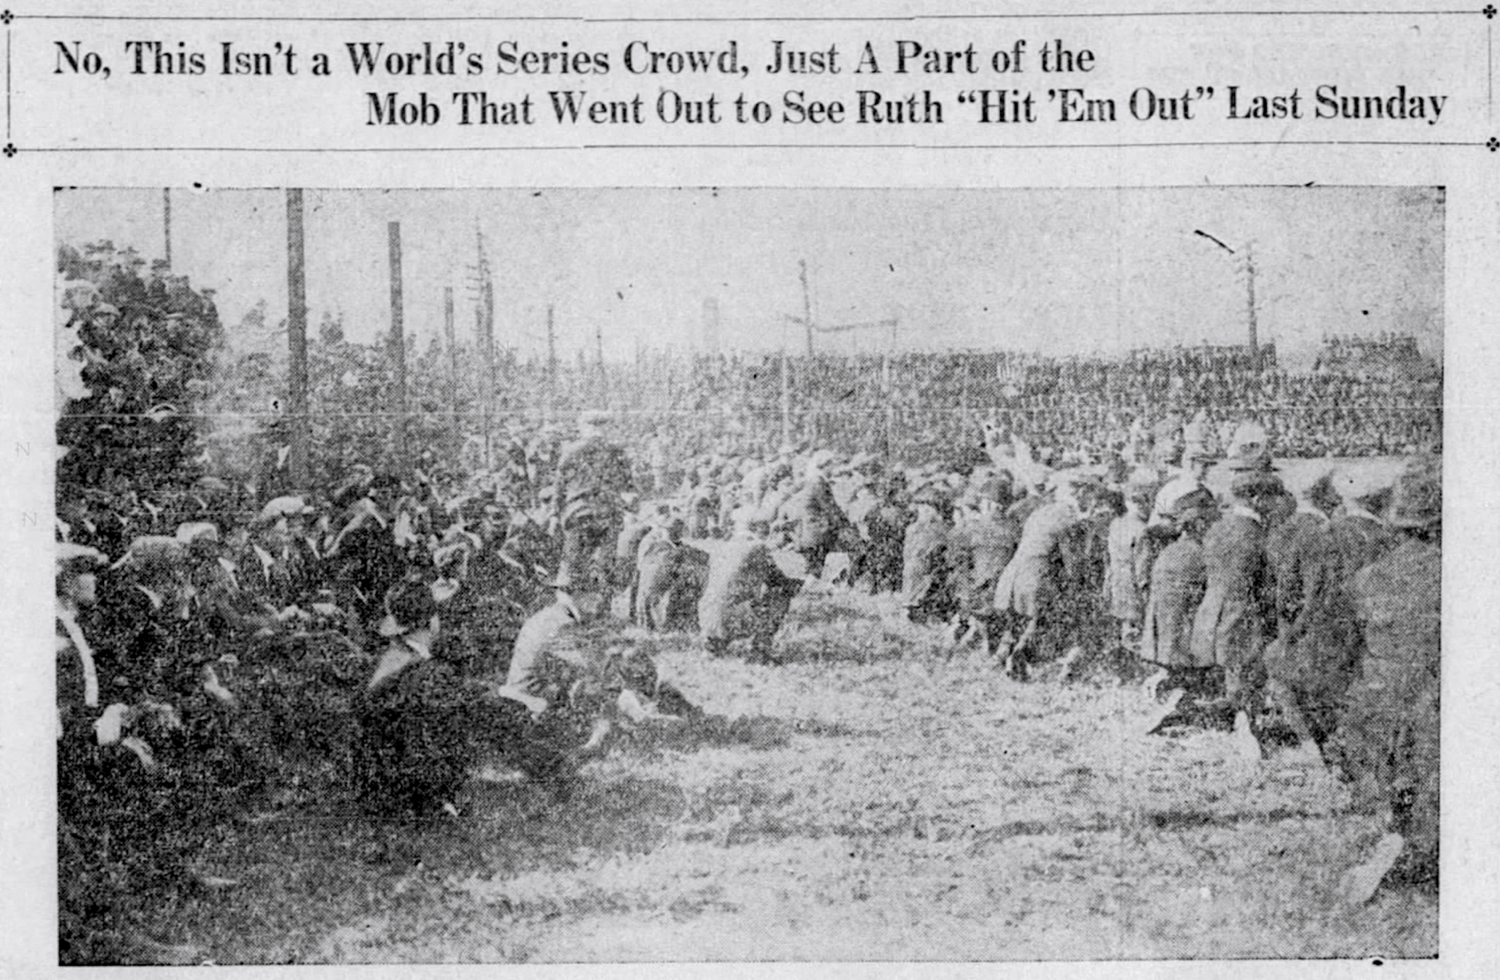 A crowd of more than 6,000 attends a Hartford Poli's vs. New Britain Pioneers game featuring Babe Ruth at Poli Field, East Hartford, Connecticut, 1919.